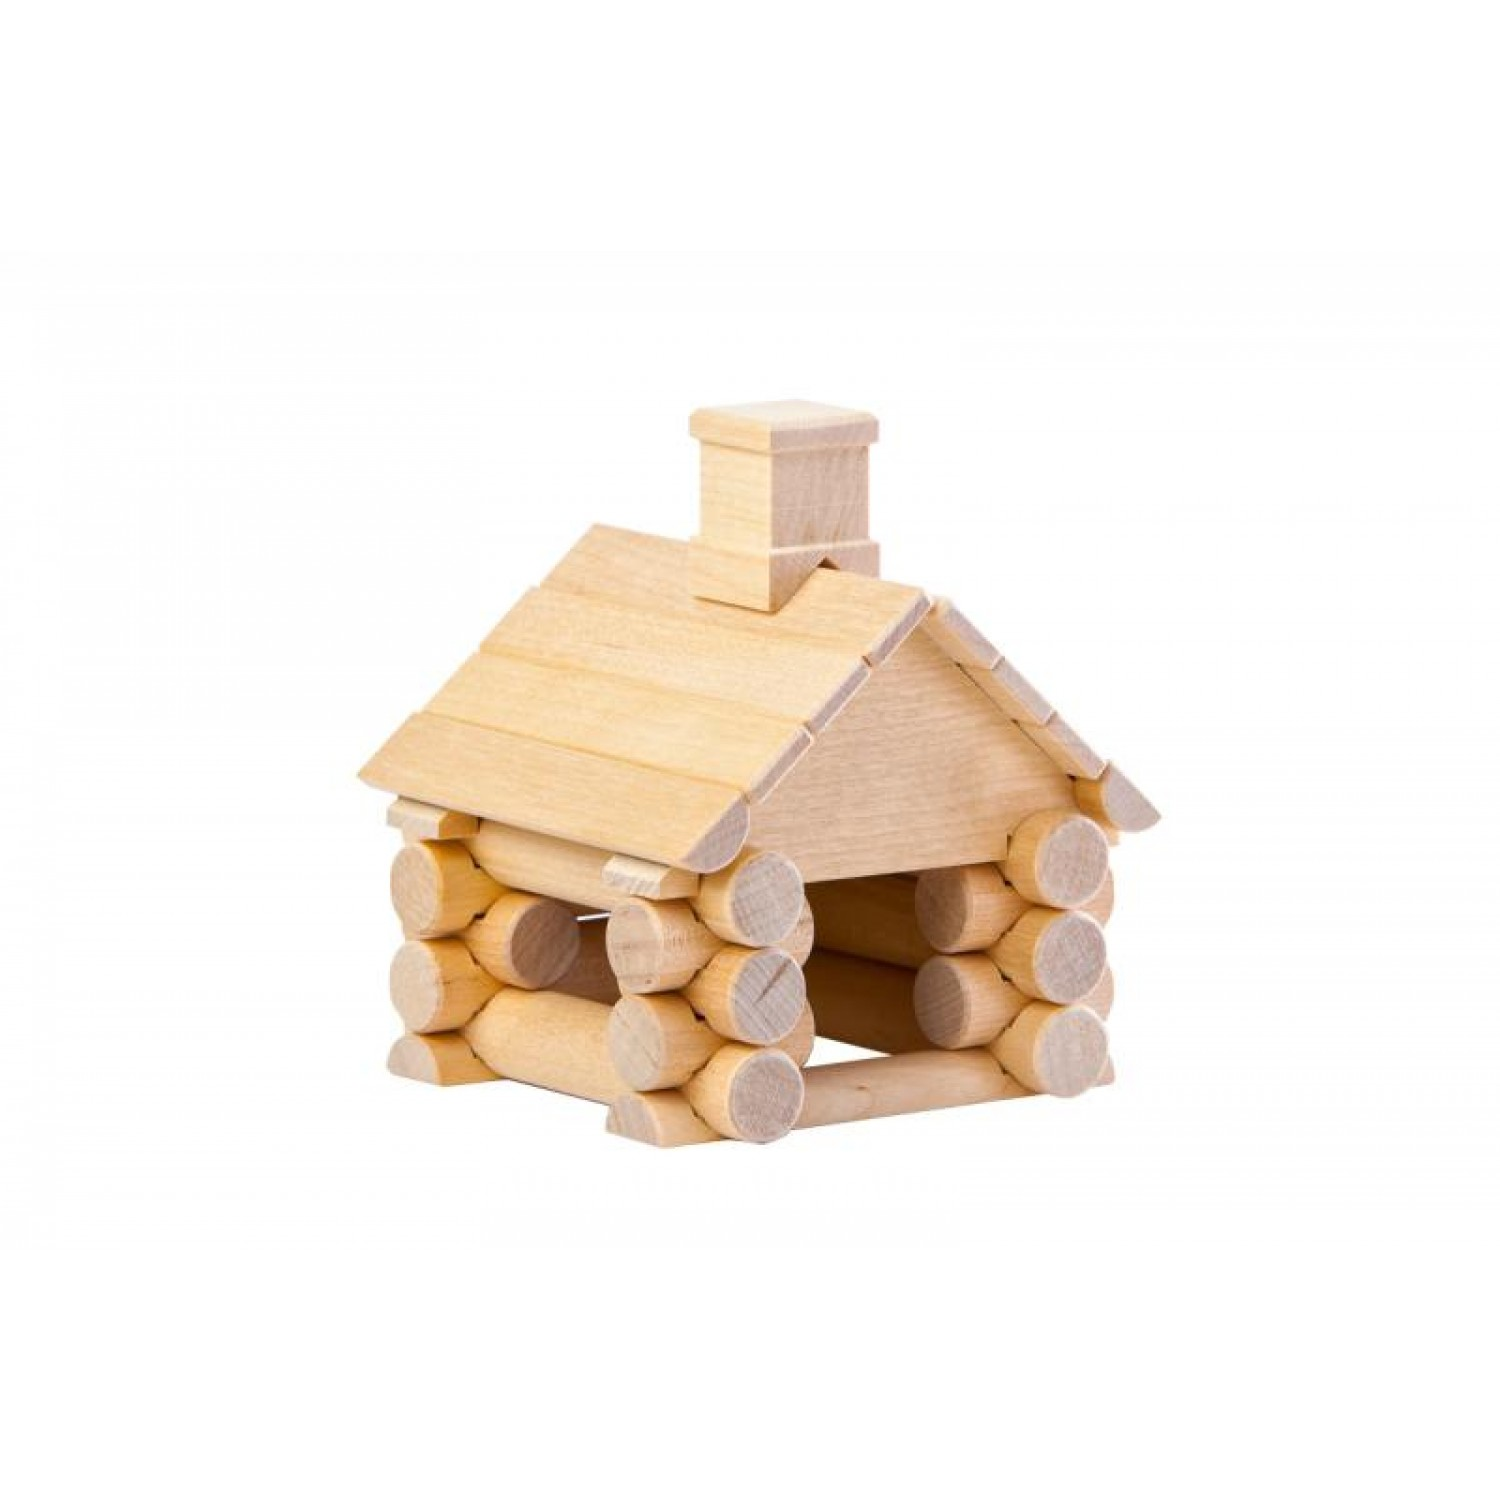 VARIS Souvenir 31 – wooden building set